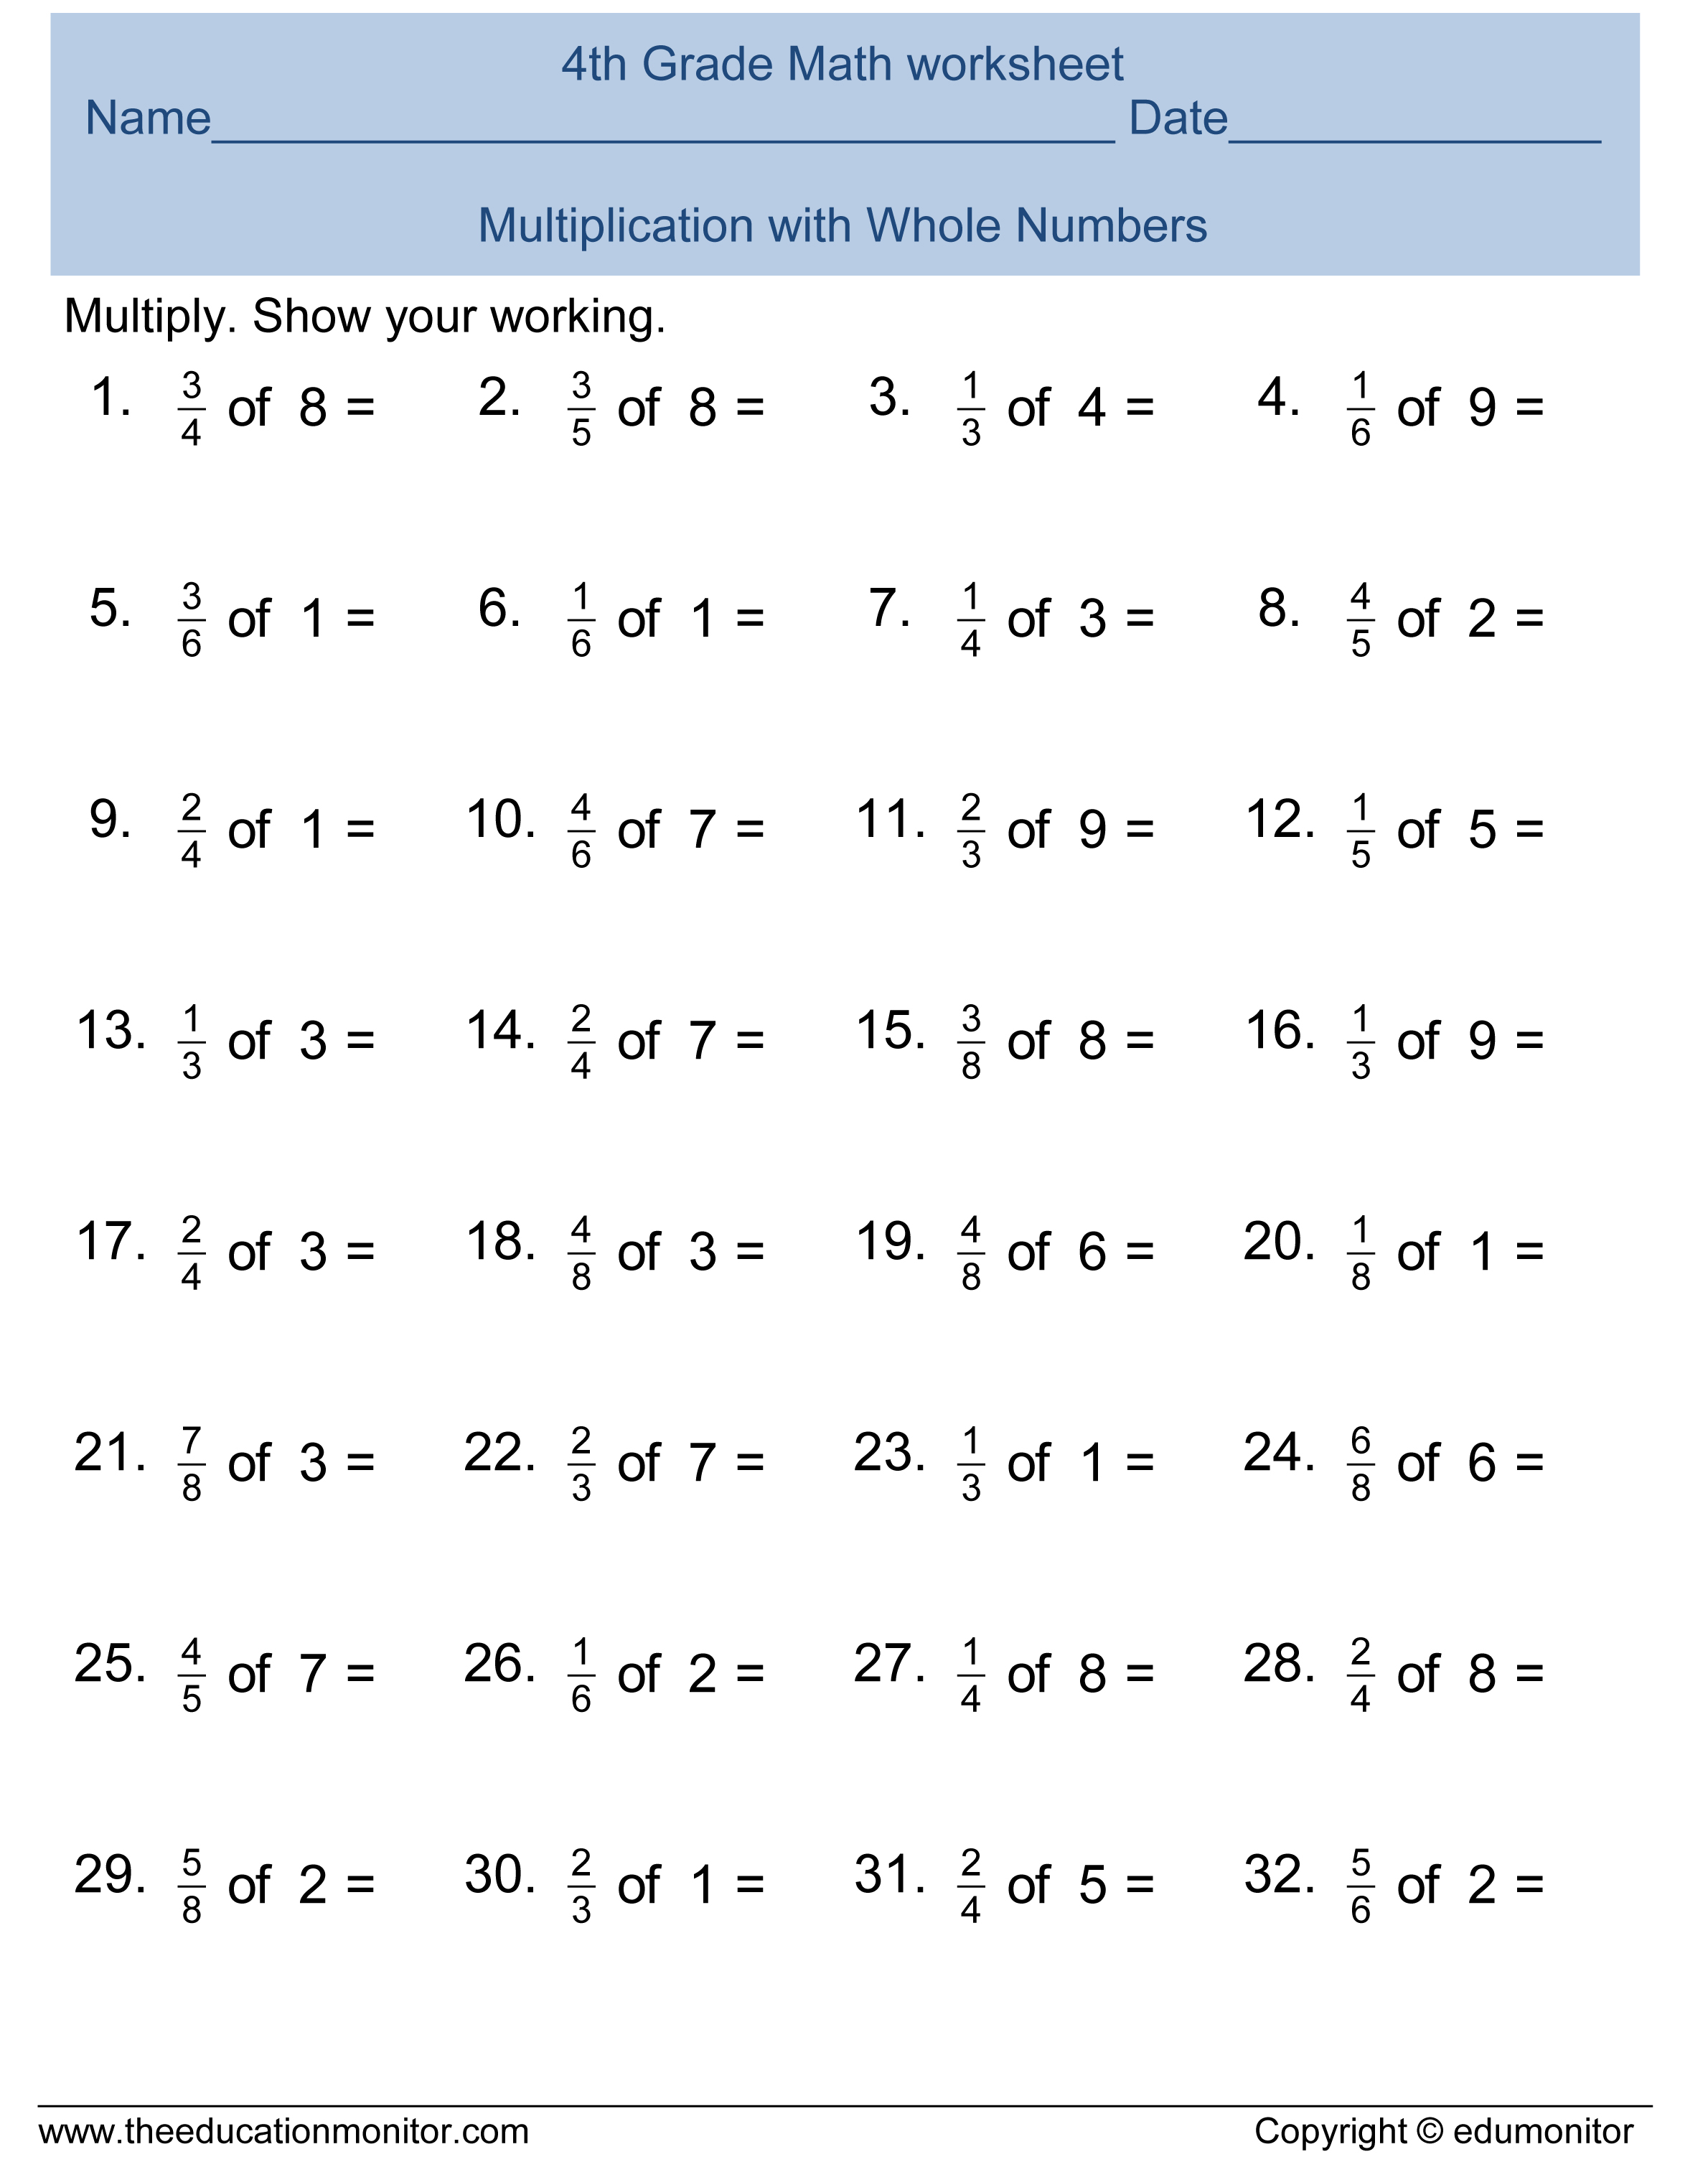 worksheet Free Math Worksheets 4th Grade free printable worksheets for 4th grade multiplication grade